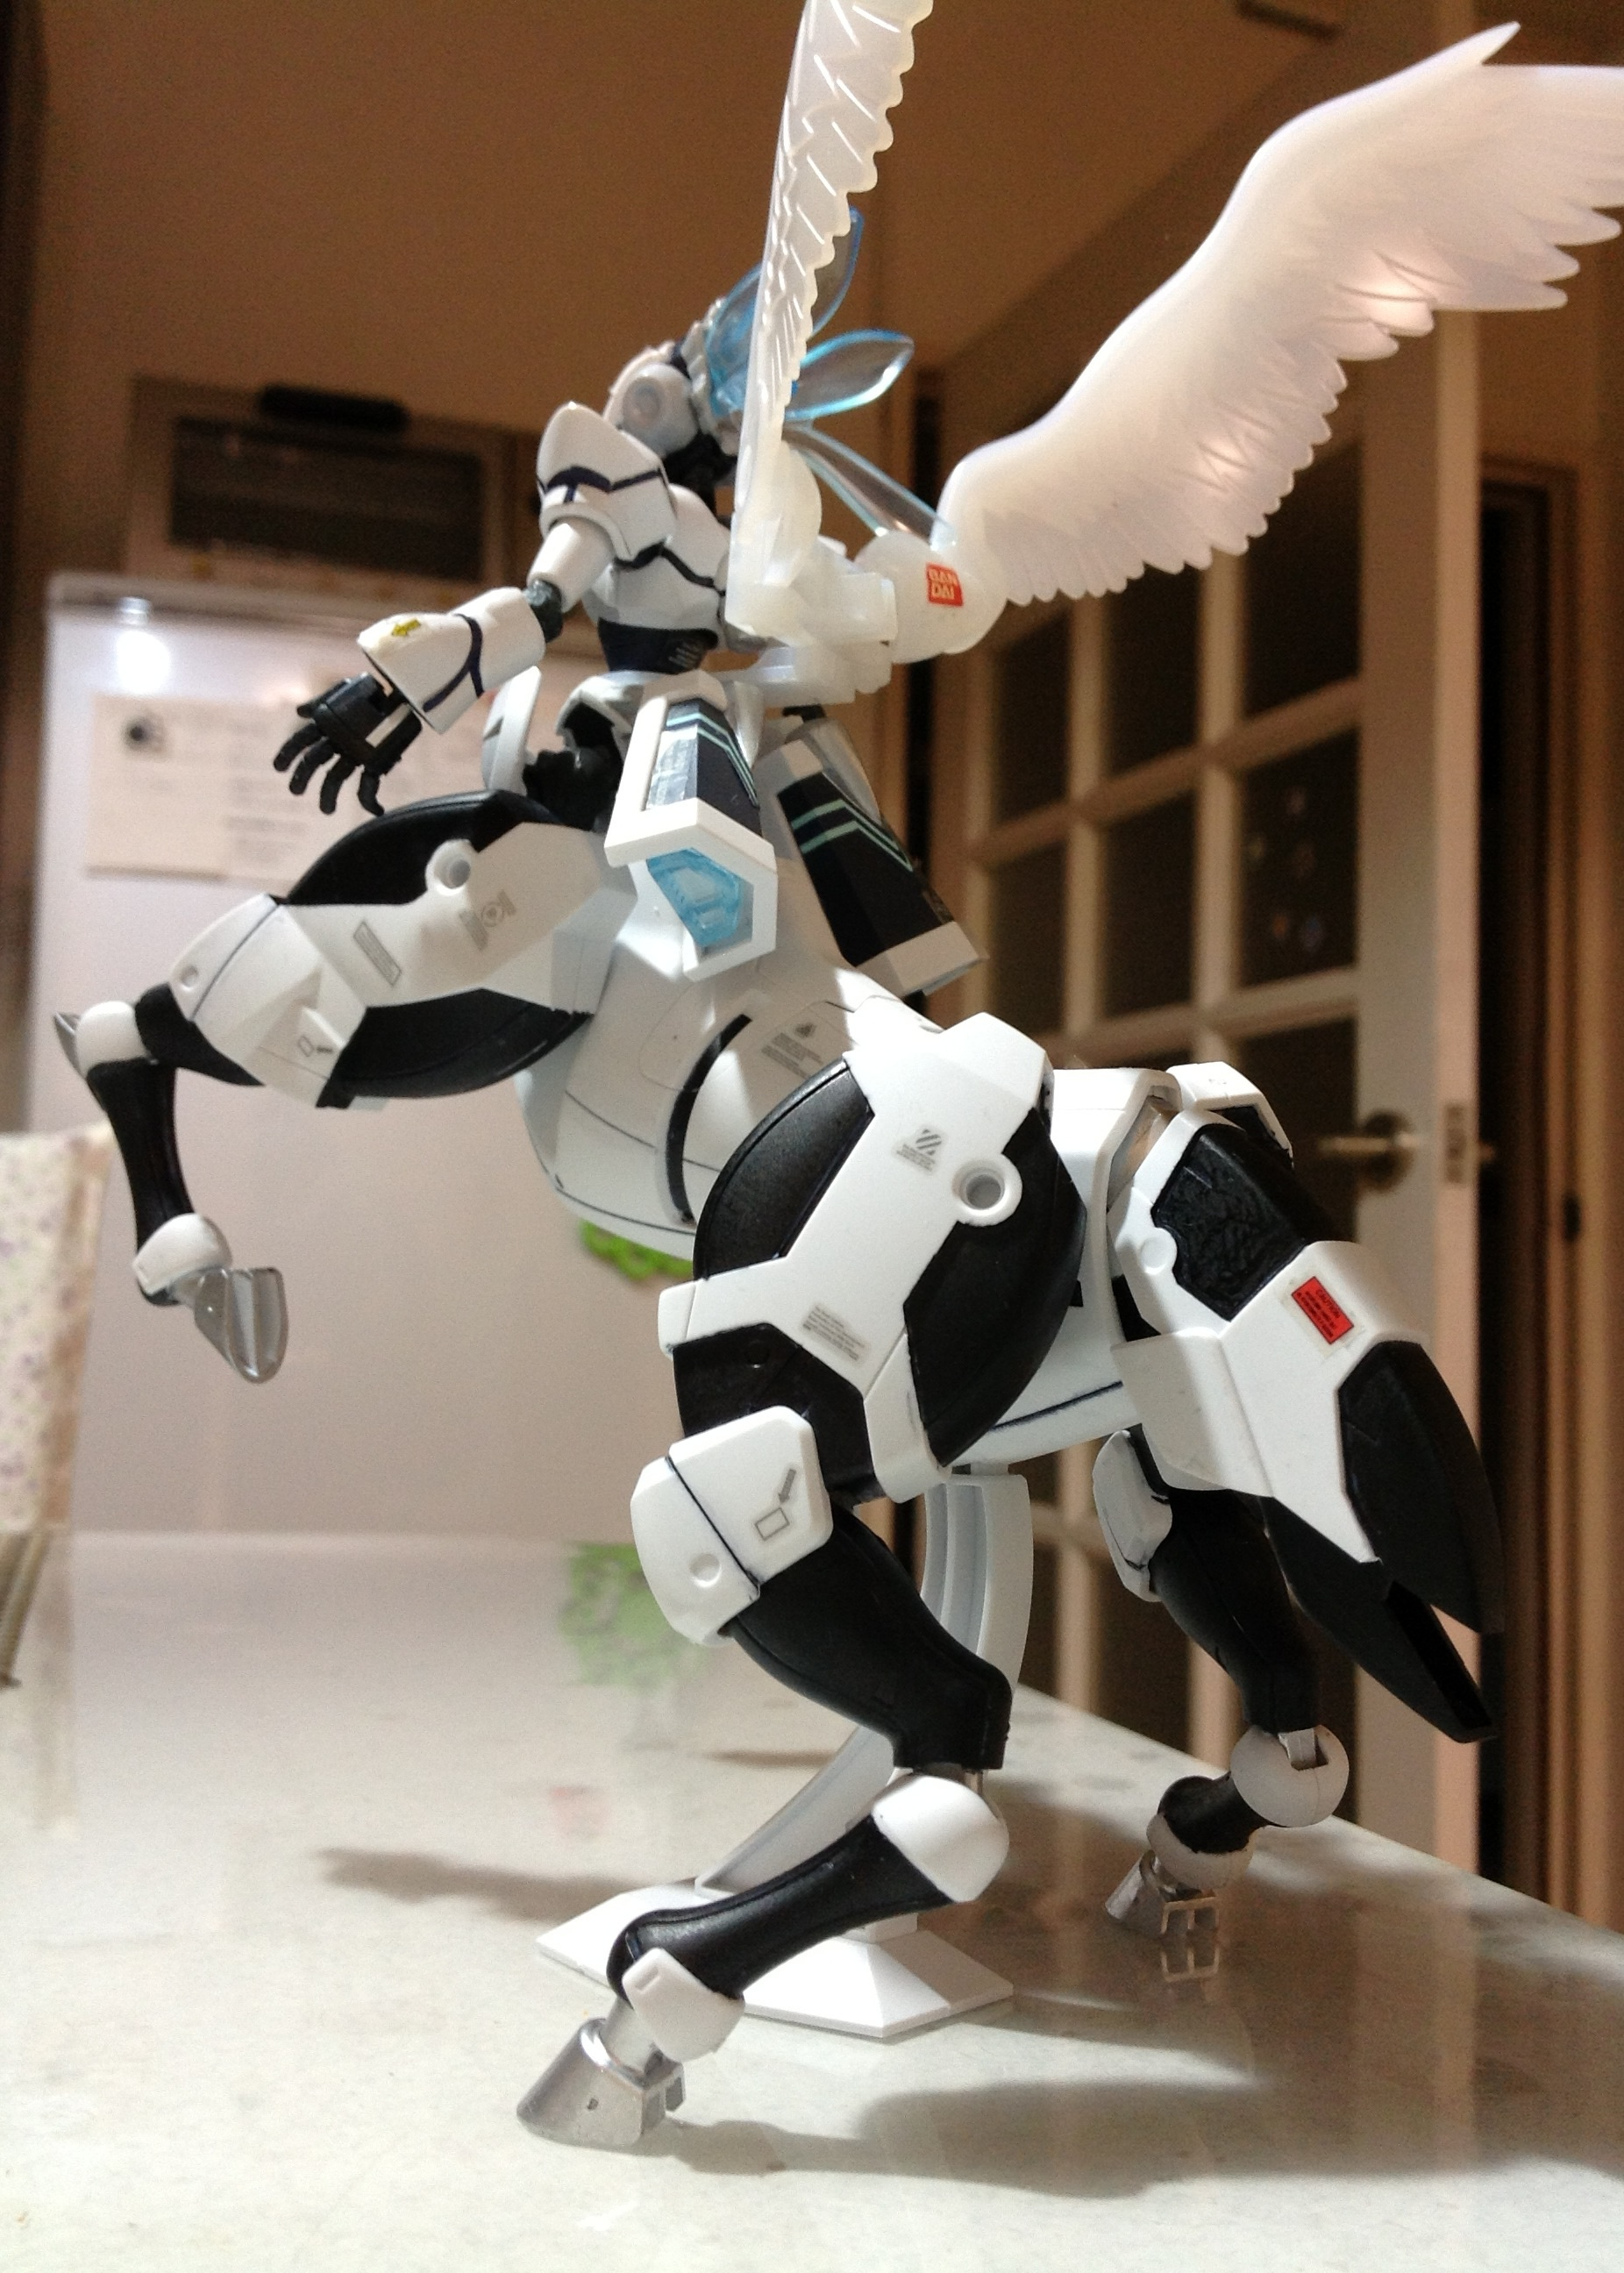 Lbx ダンボール戦機 White Pandora Pegasus Ver Custom Build